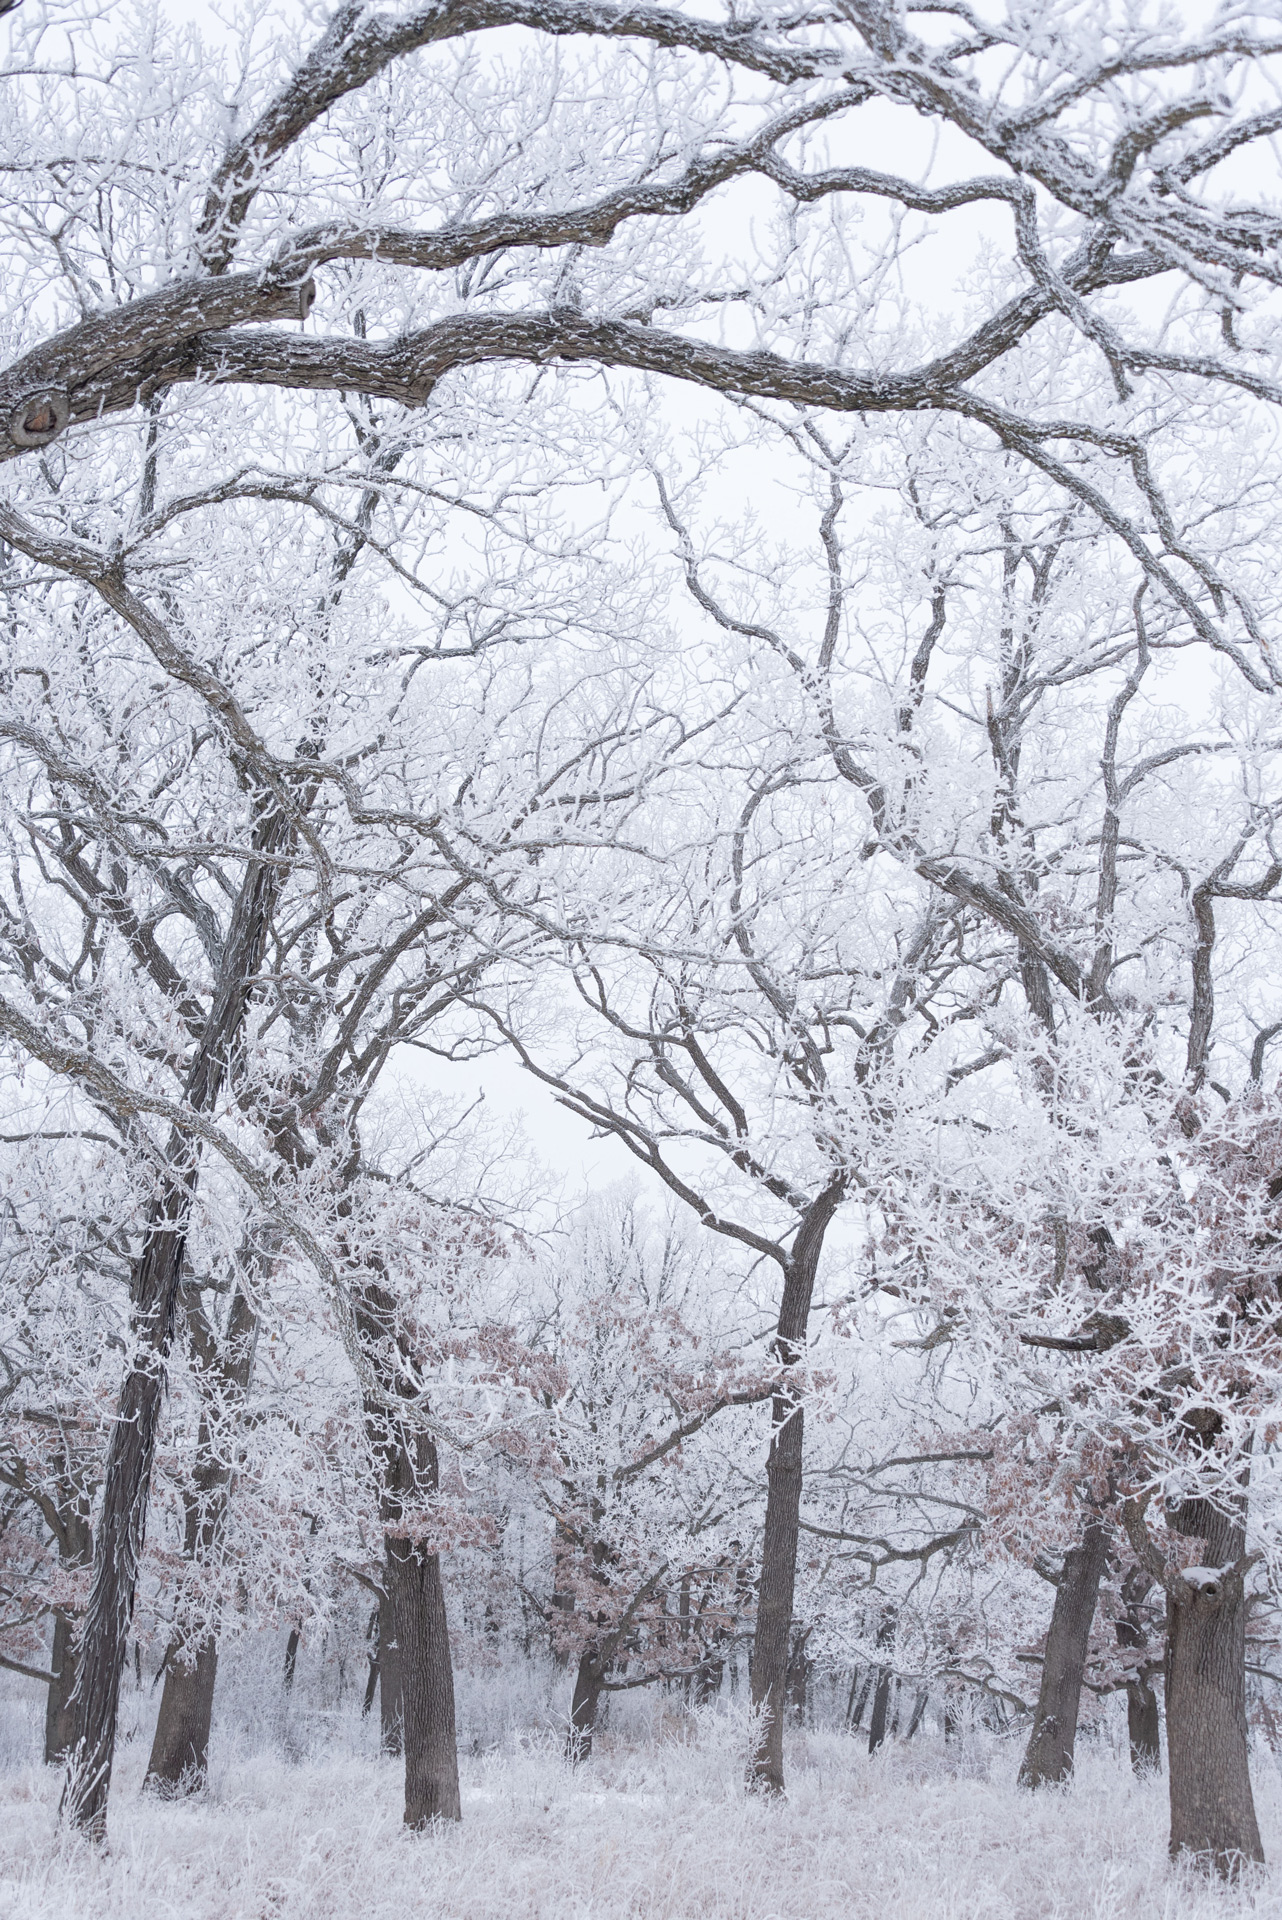 Frosty oak trees in winter